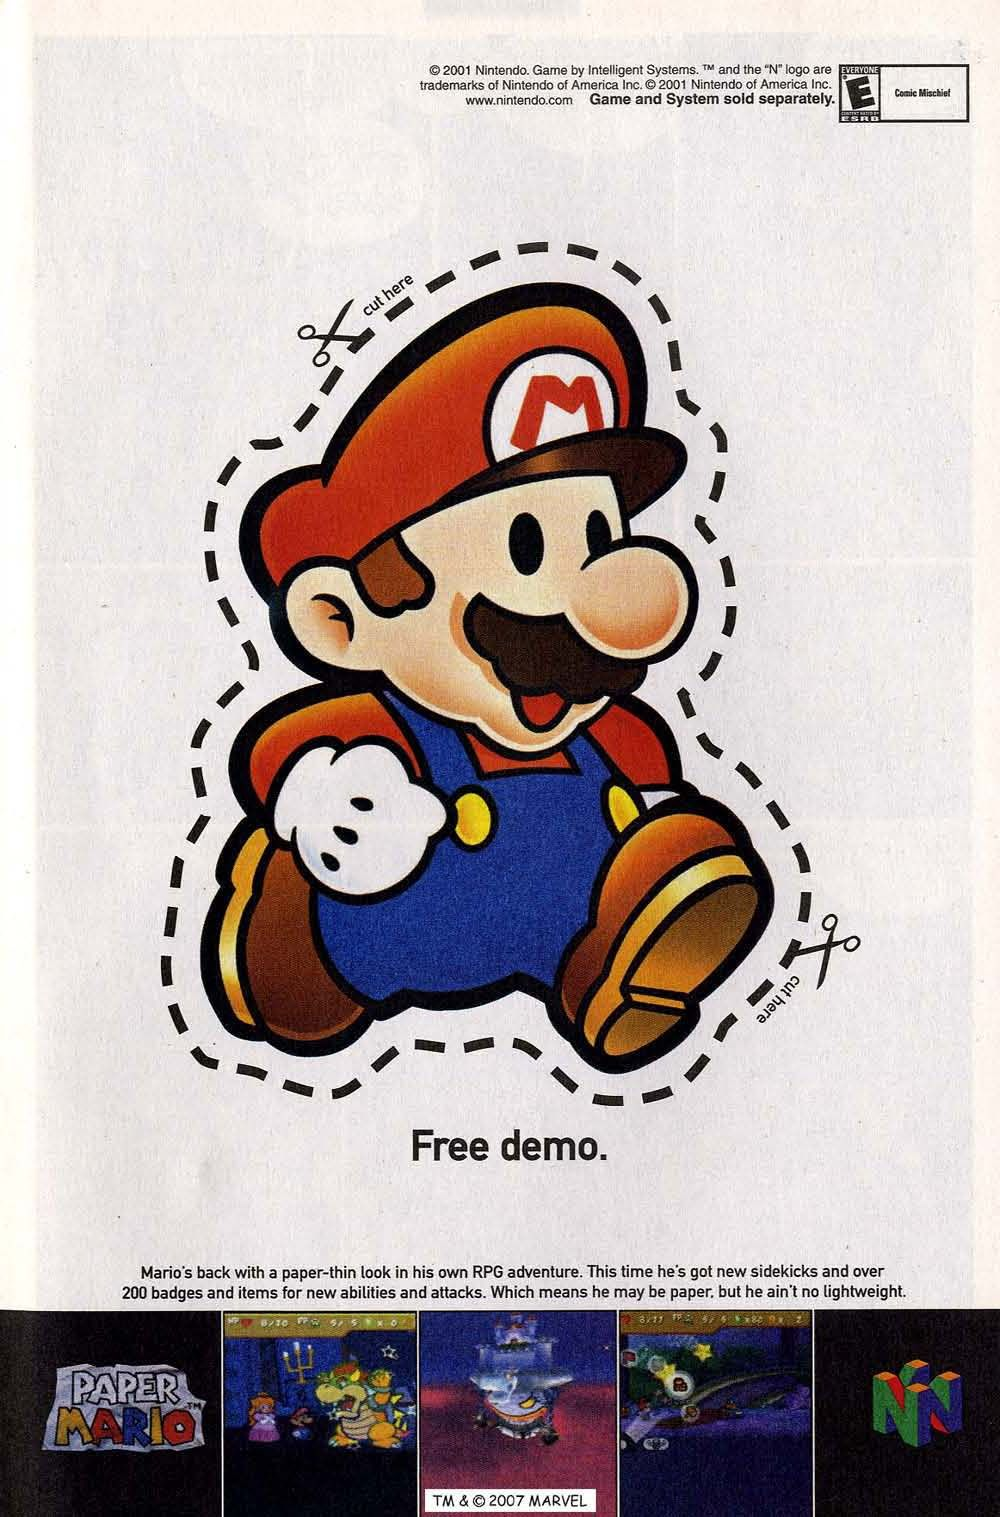 Ingenious ad for Paper Mario (Nintendo 64) in the days